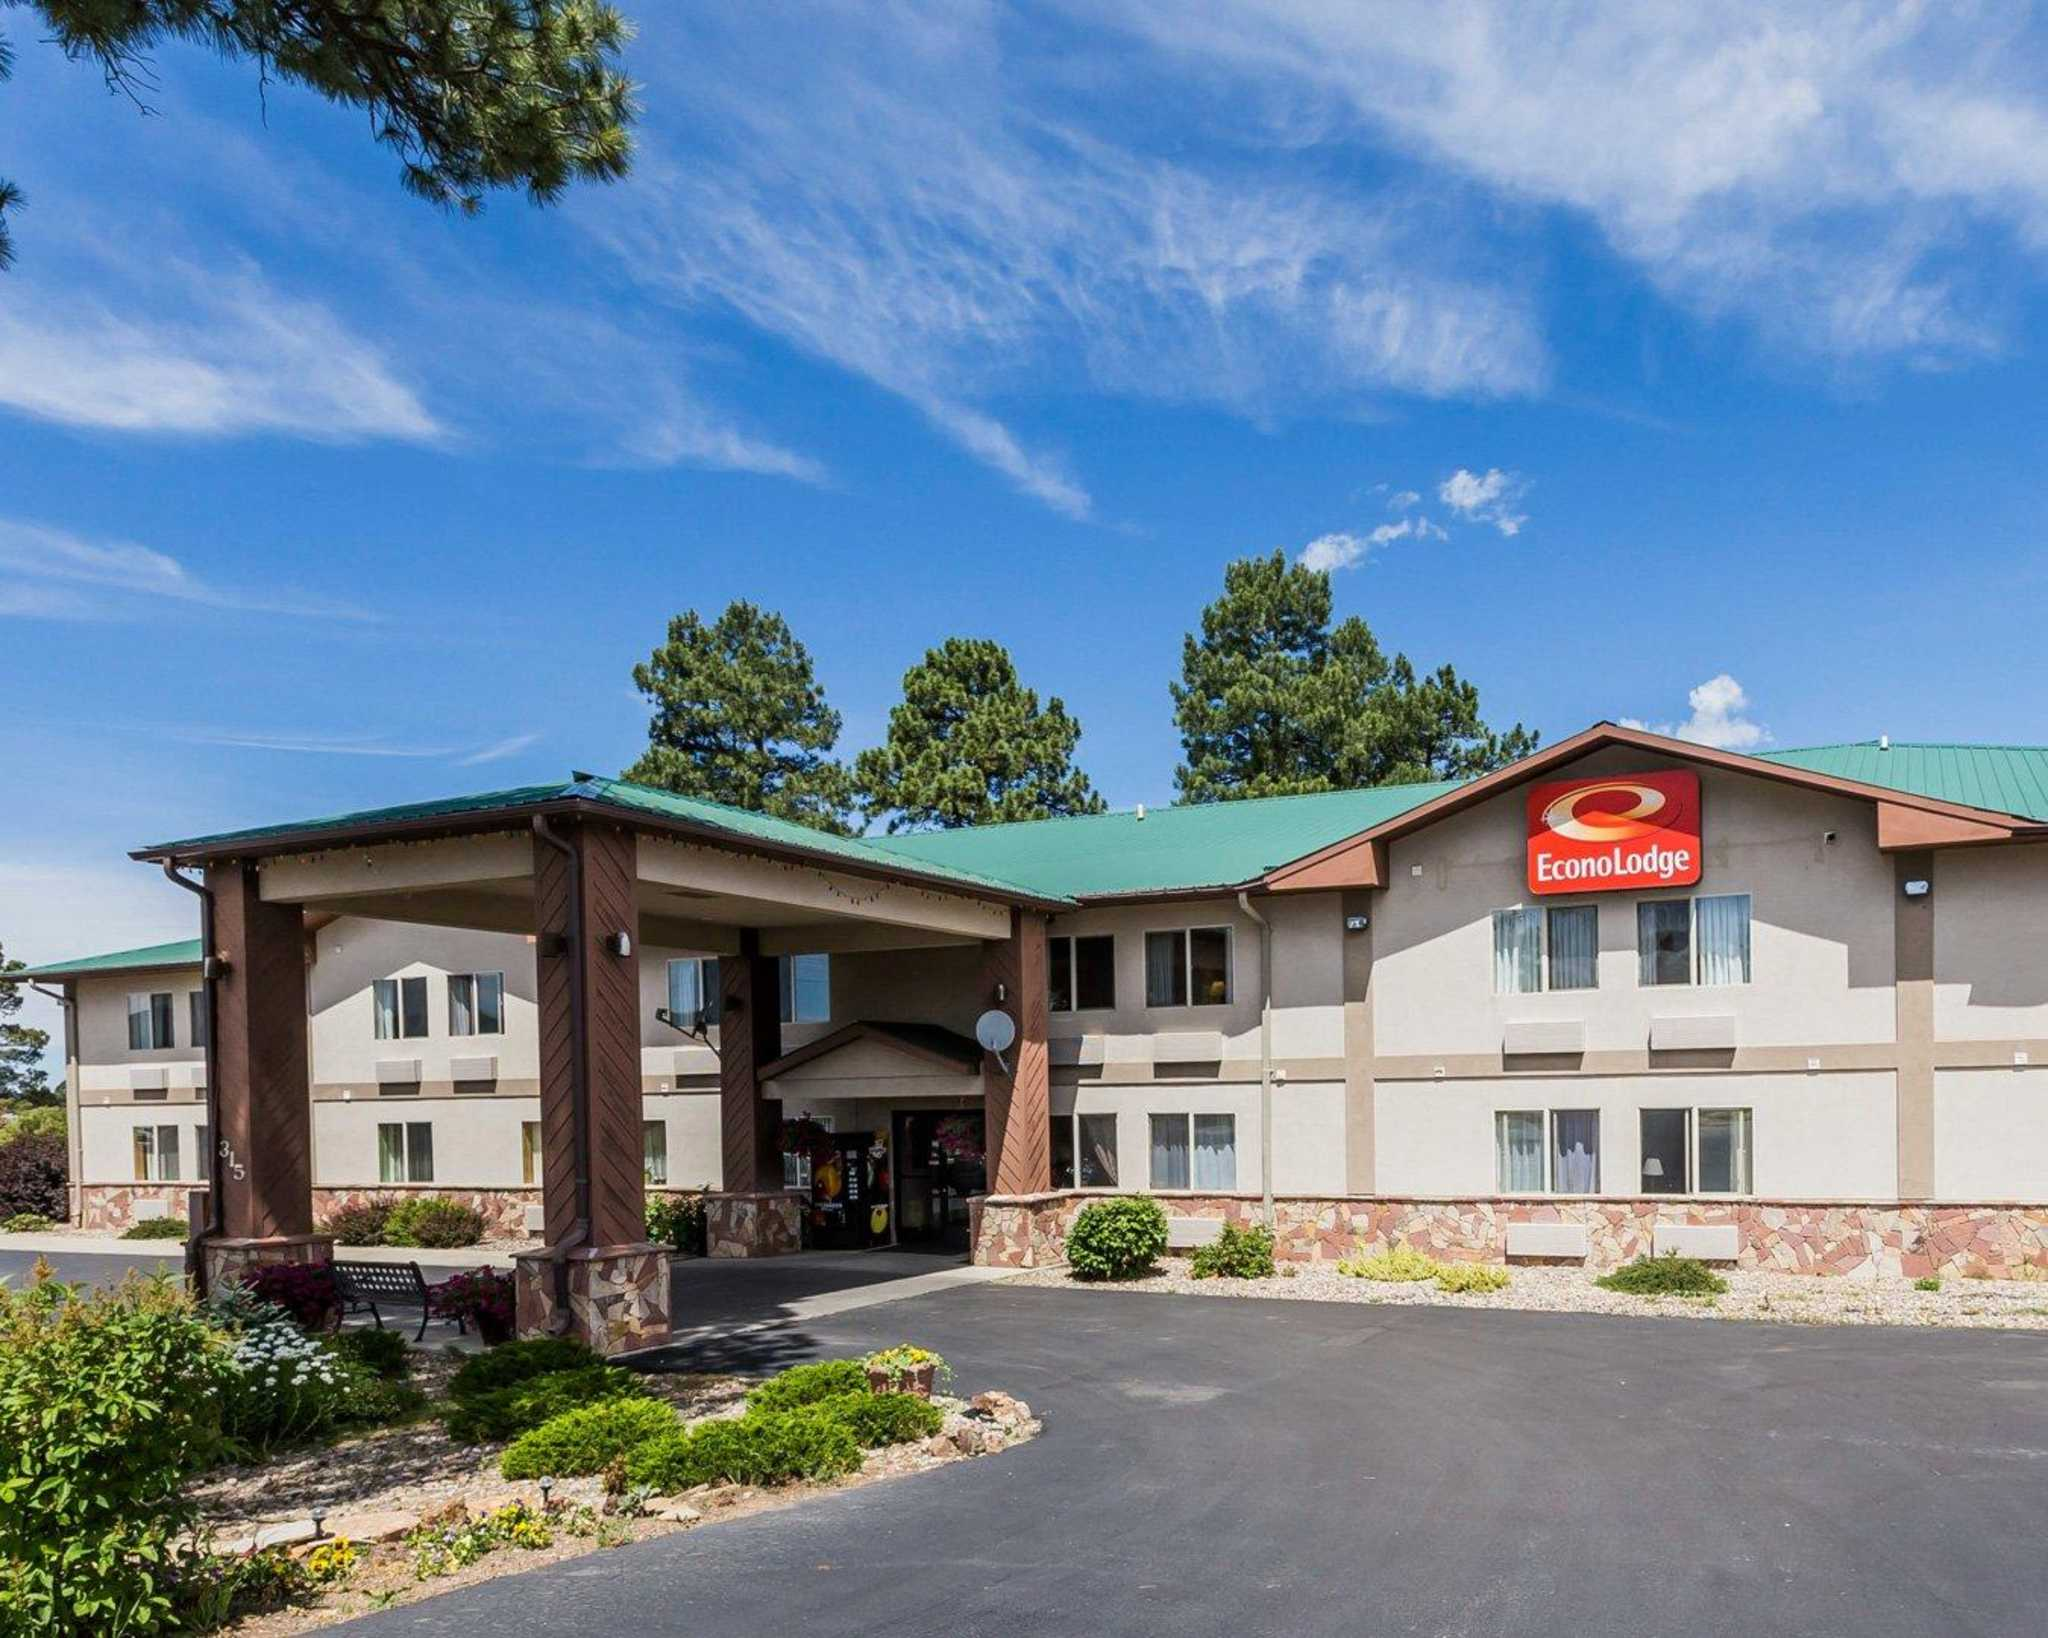 Econo Lodge  Pagosa Springs Colorado  Co